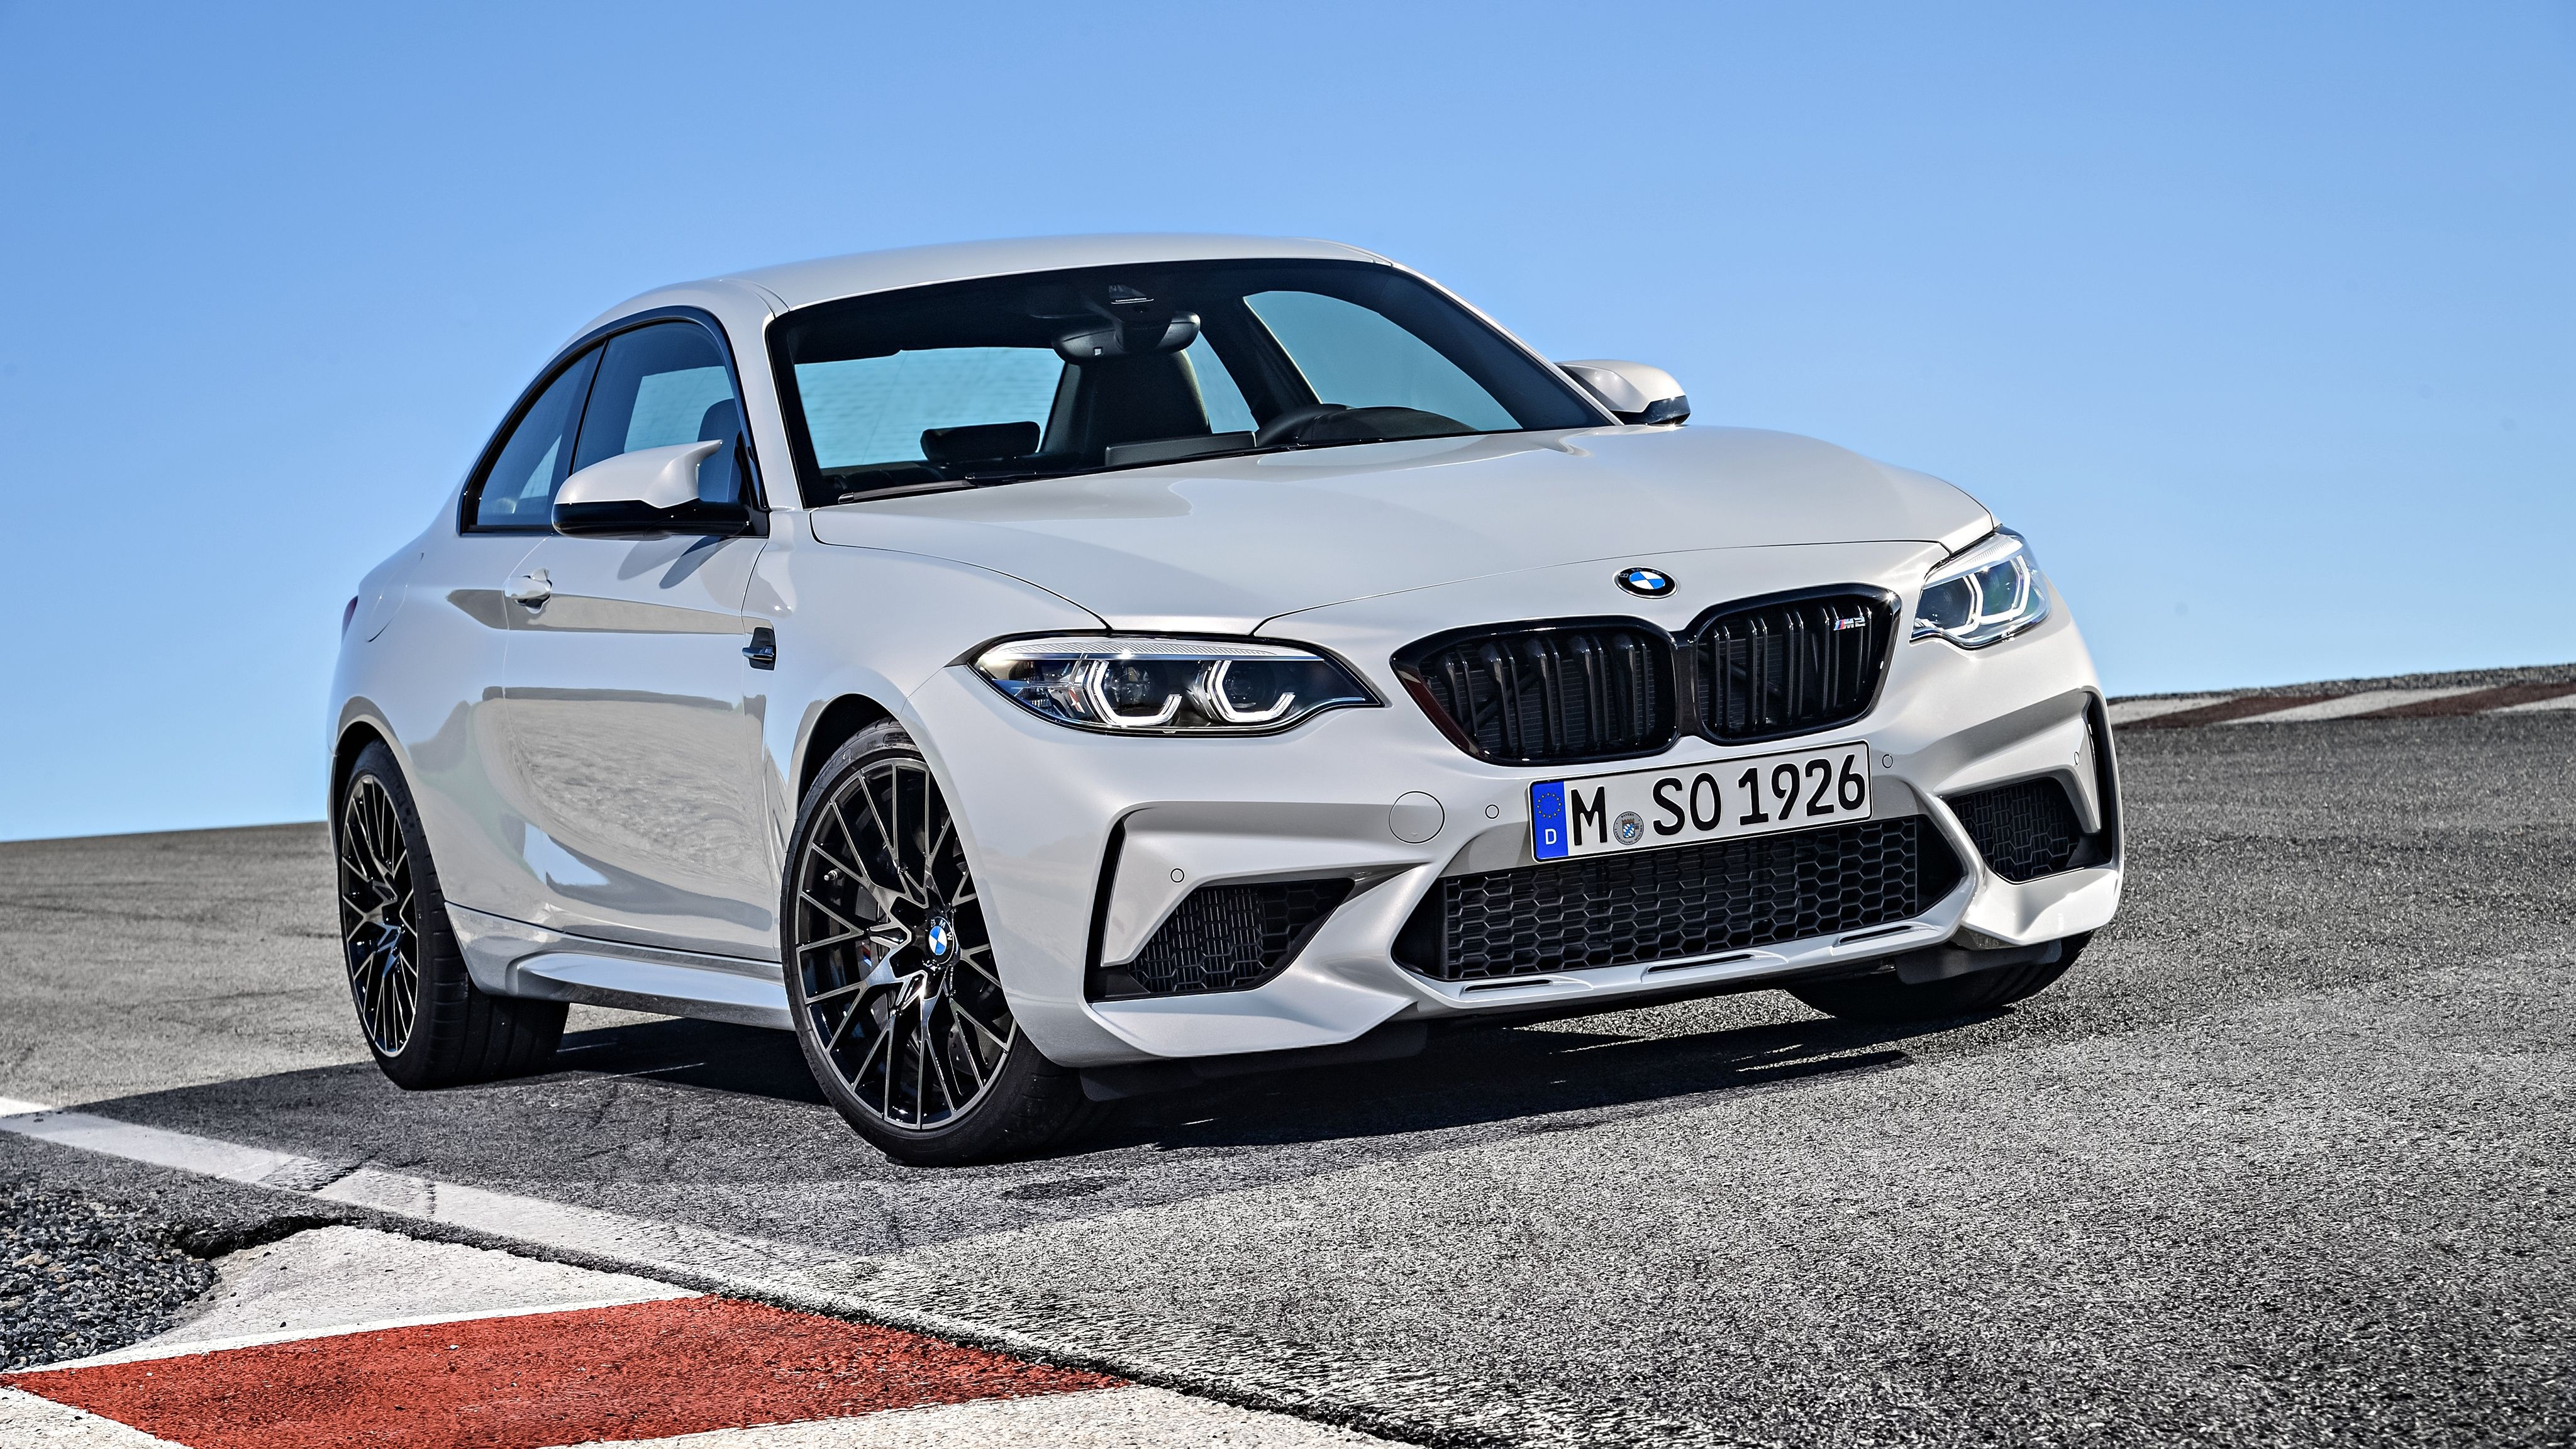 2018 Bmw M2 Competition 4k Bmw M2 Bmw Bmw Cars